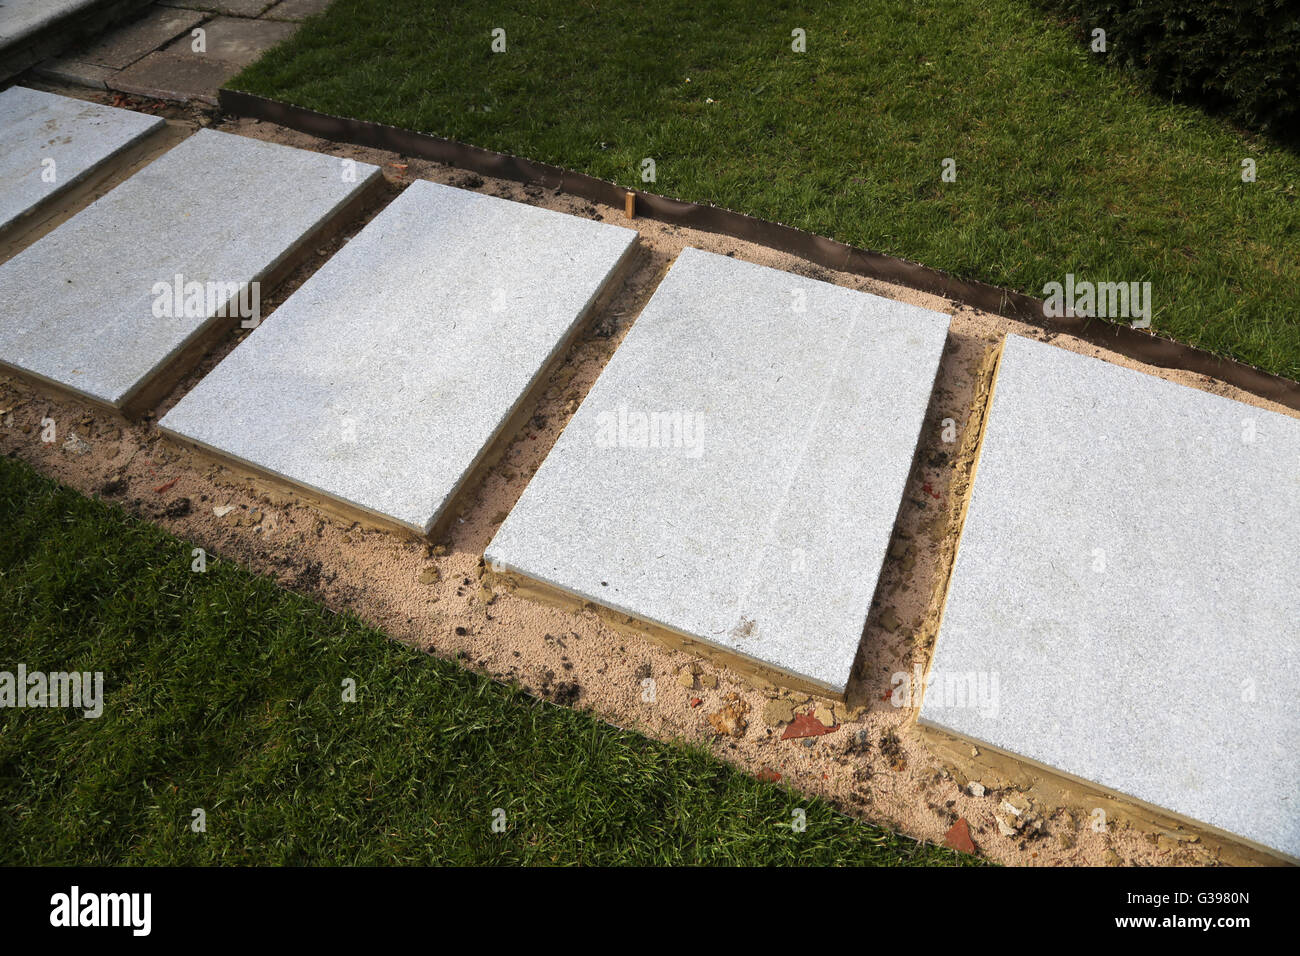 Laying Concrete Slabs : Laying new garden path concrete slabs surrey england